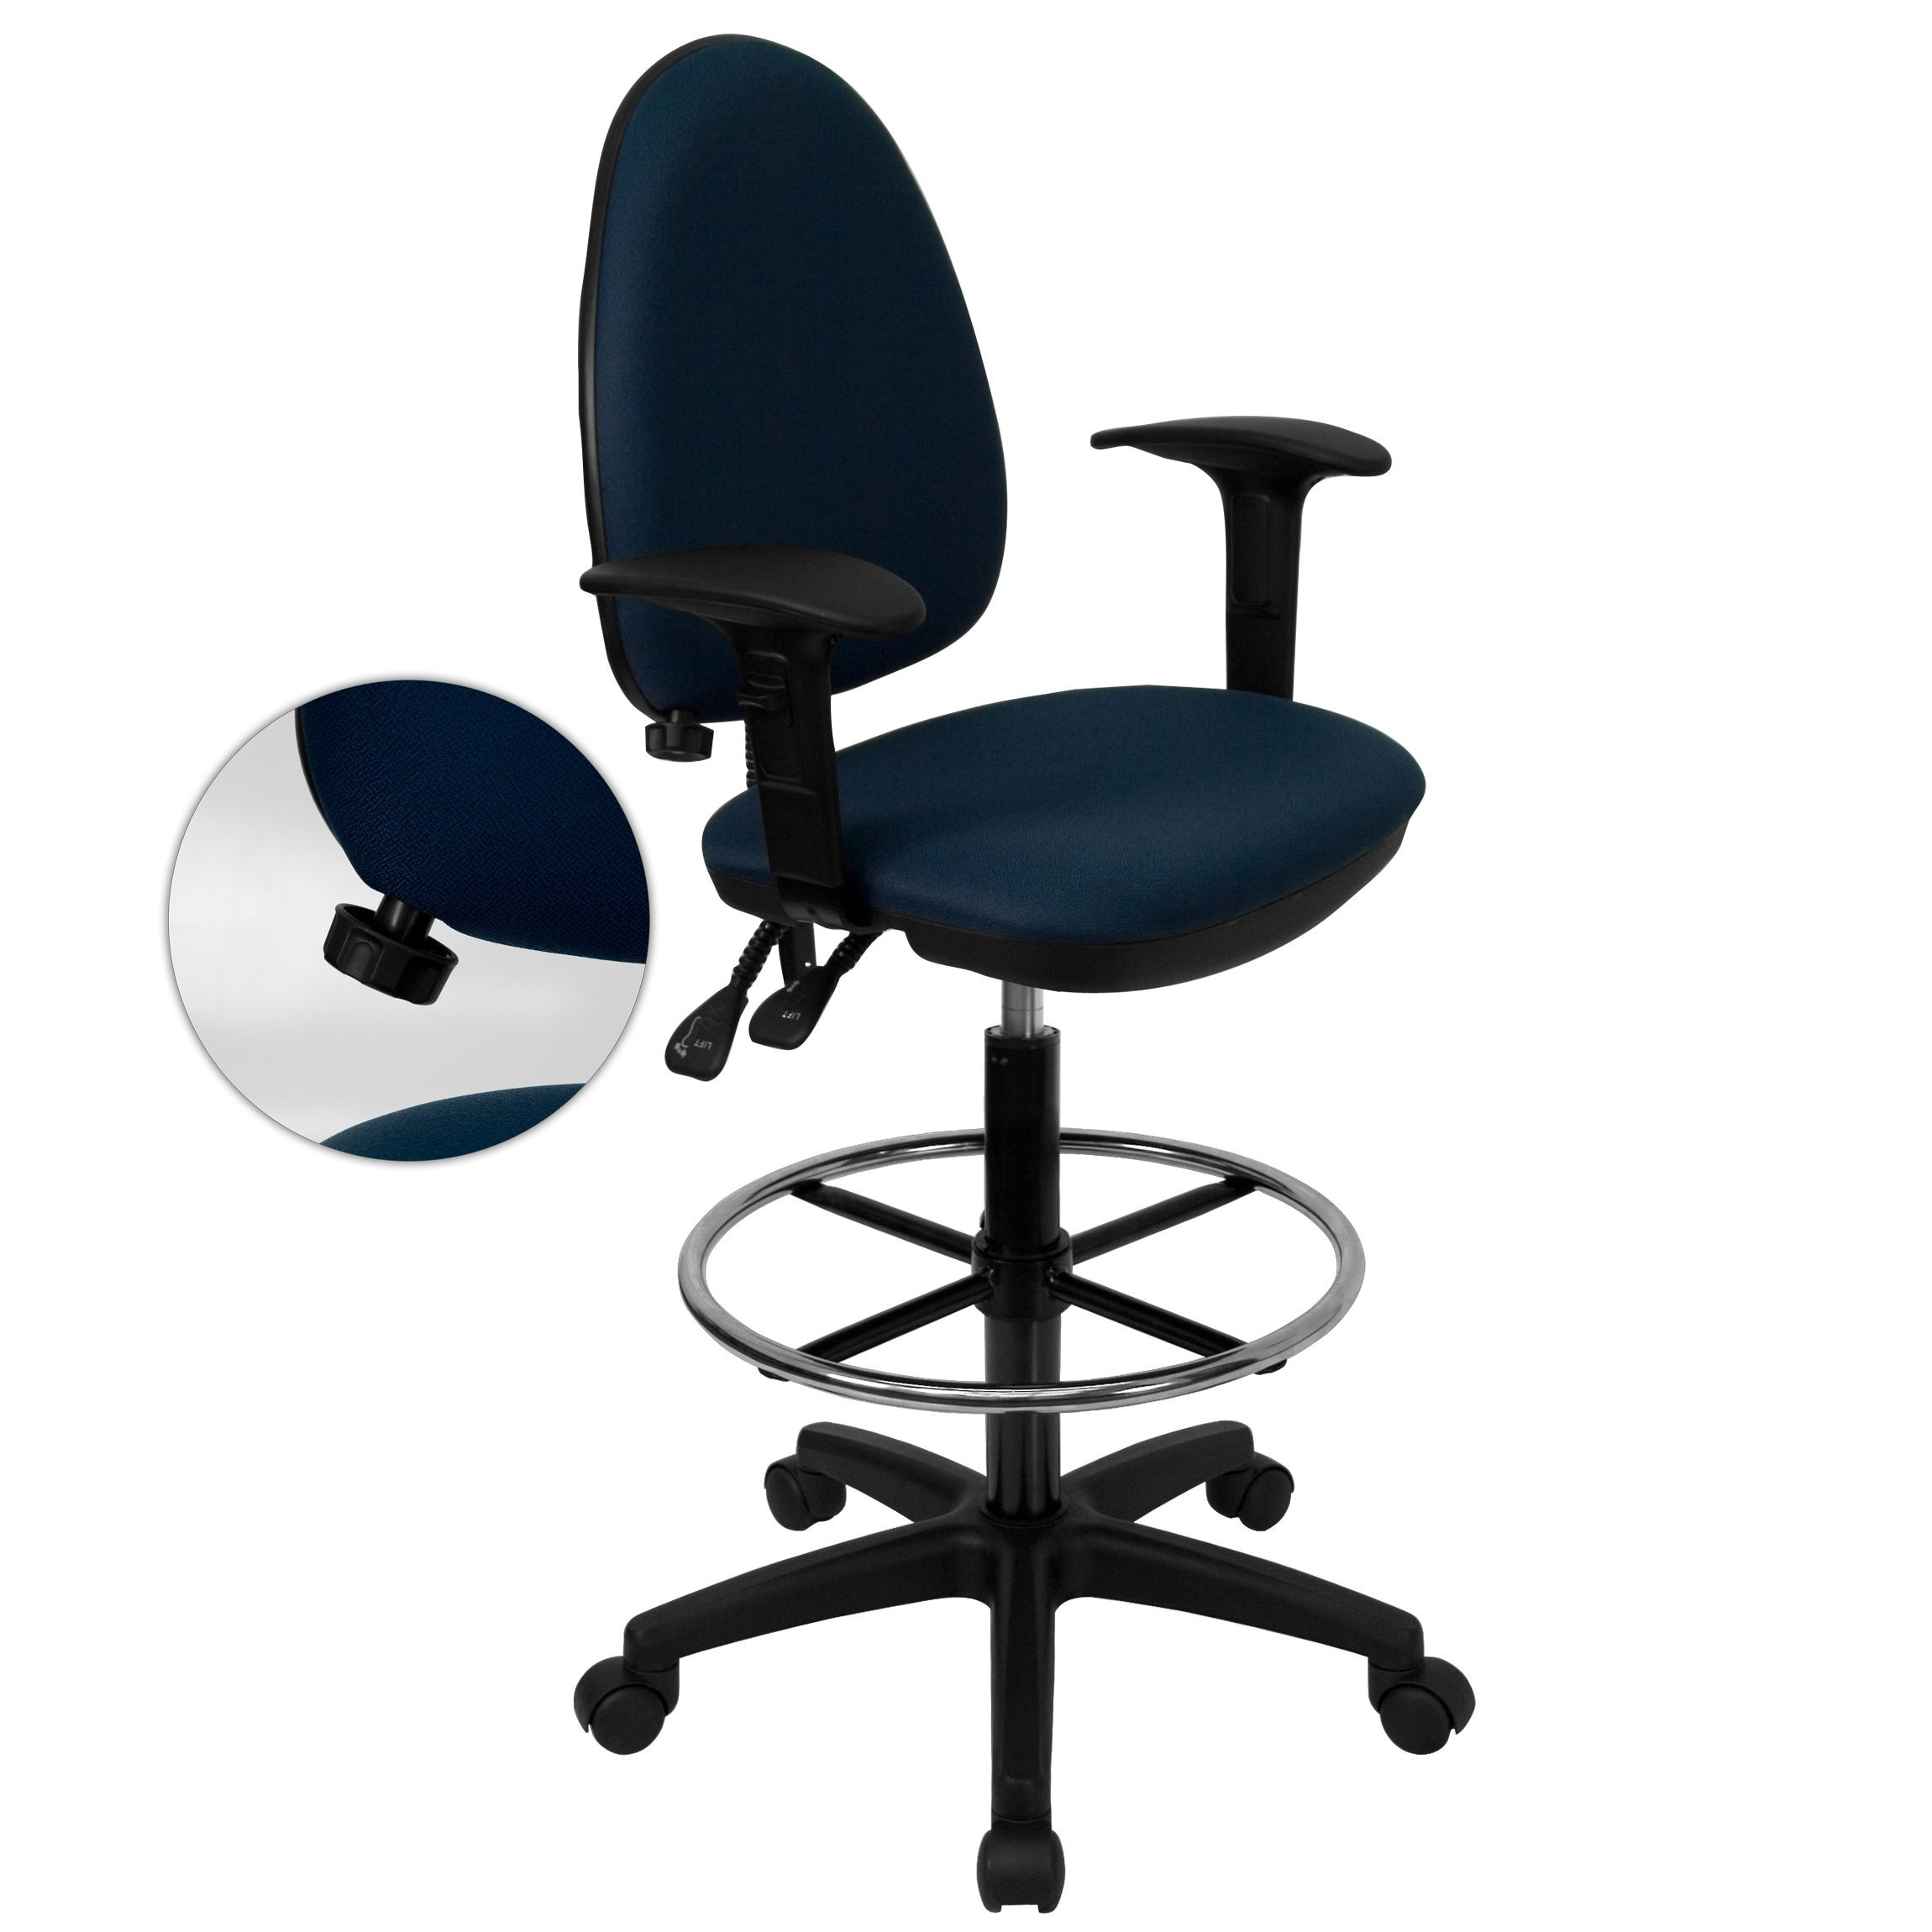 Flash Furniture WL-A654MG-NVY-AD-GG Mid-Back Navy Blue Fabric Multi-Functional Drafting Stool with Arms and Adjustable Lumbar Support